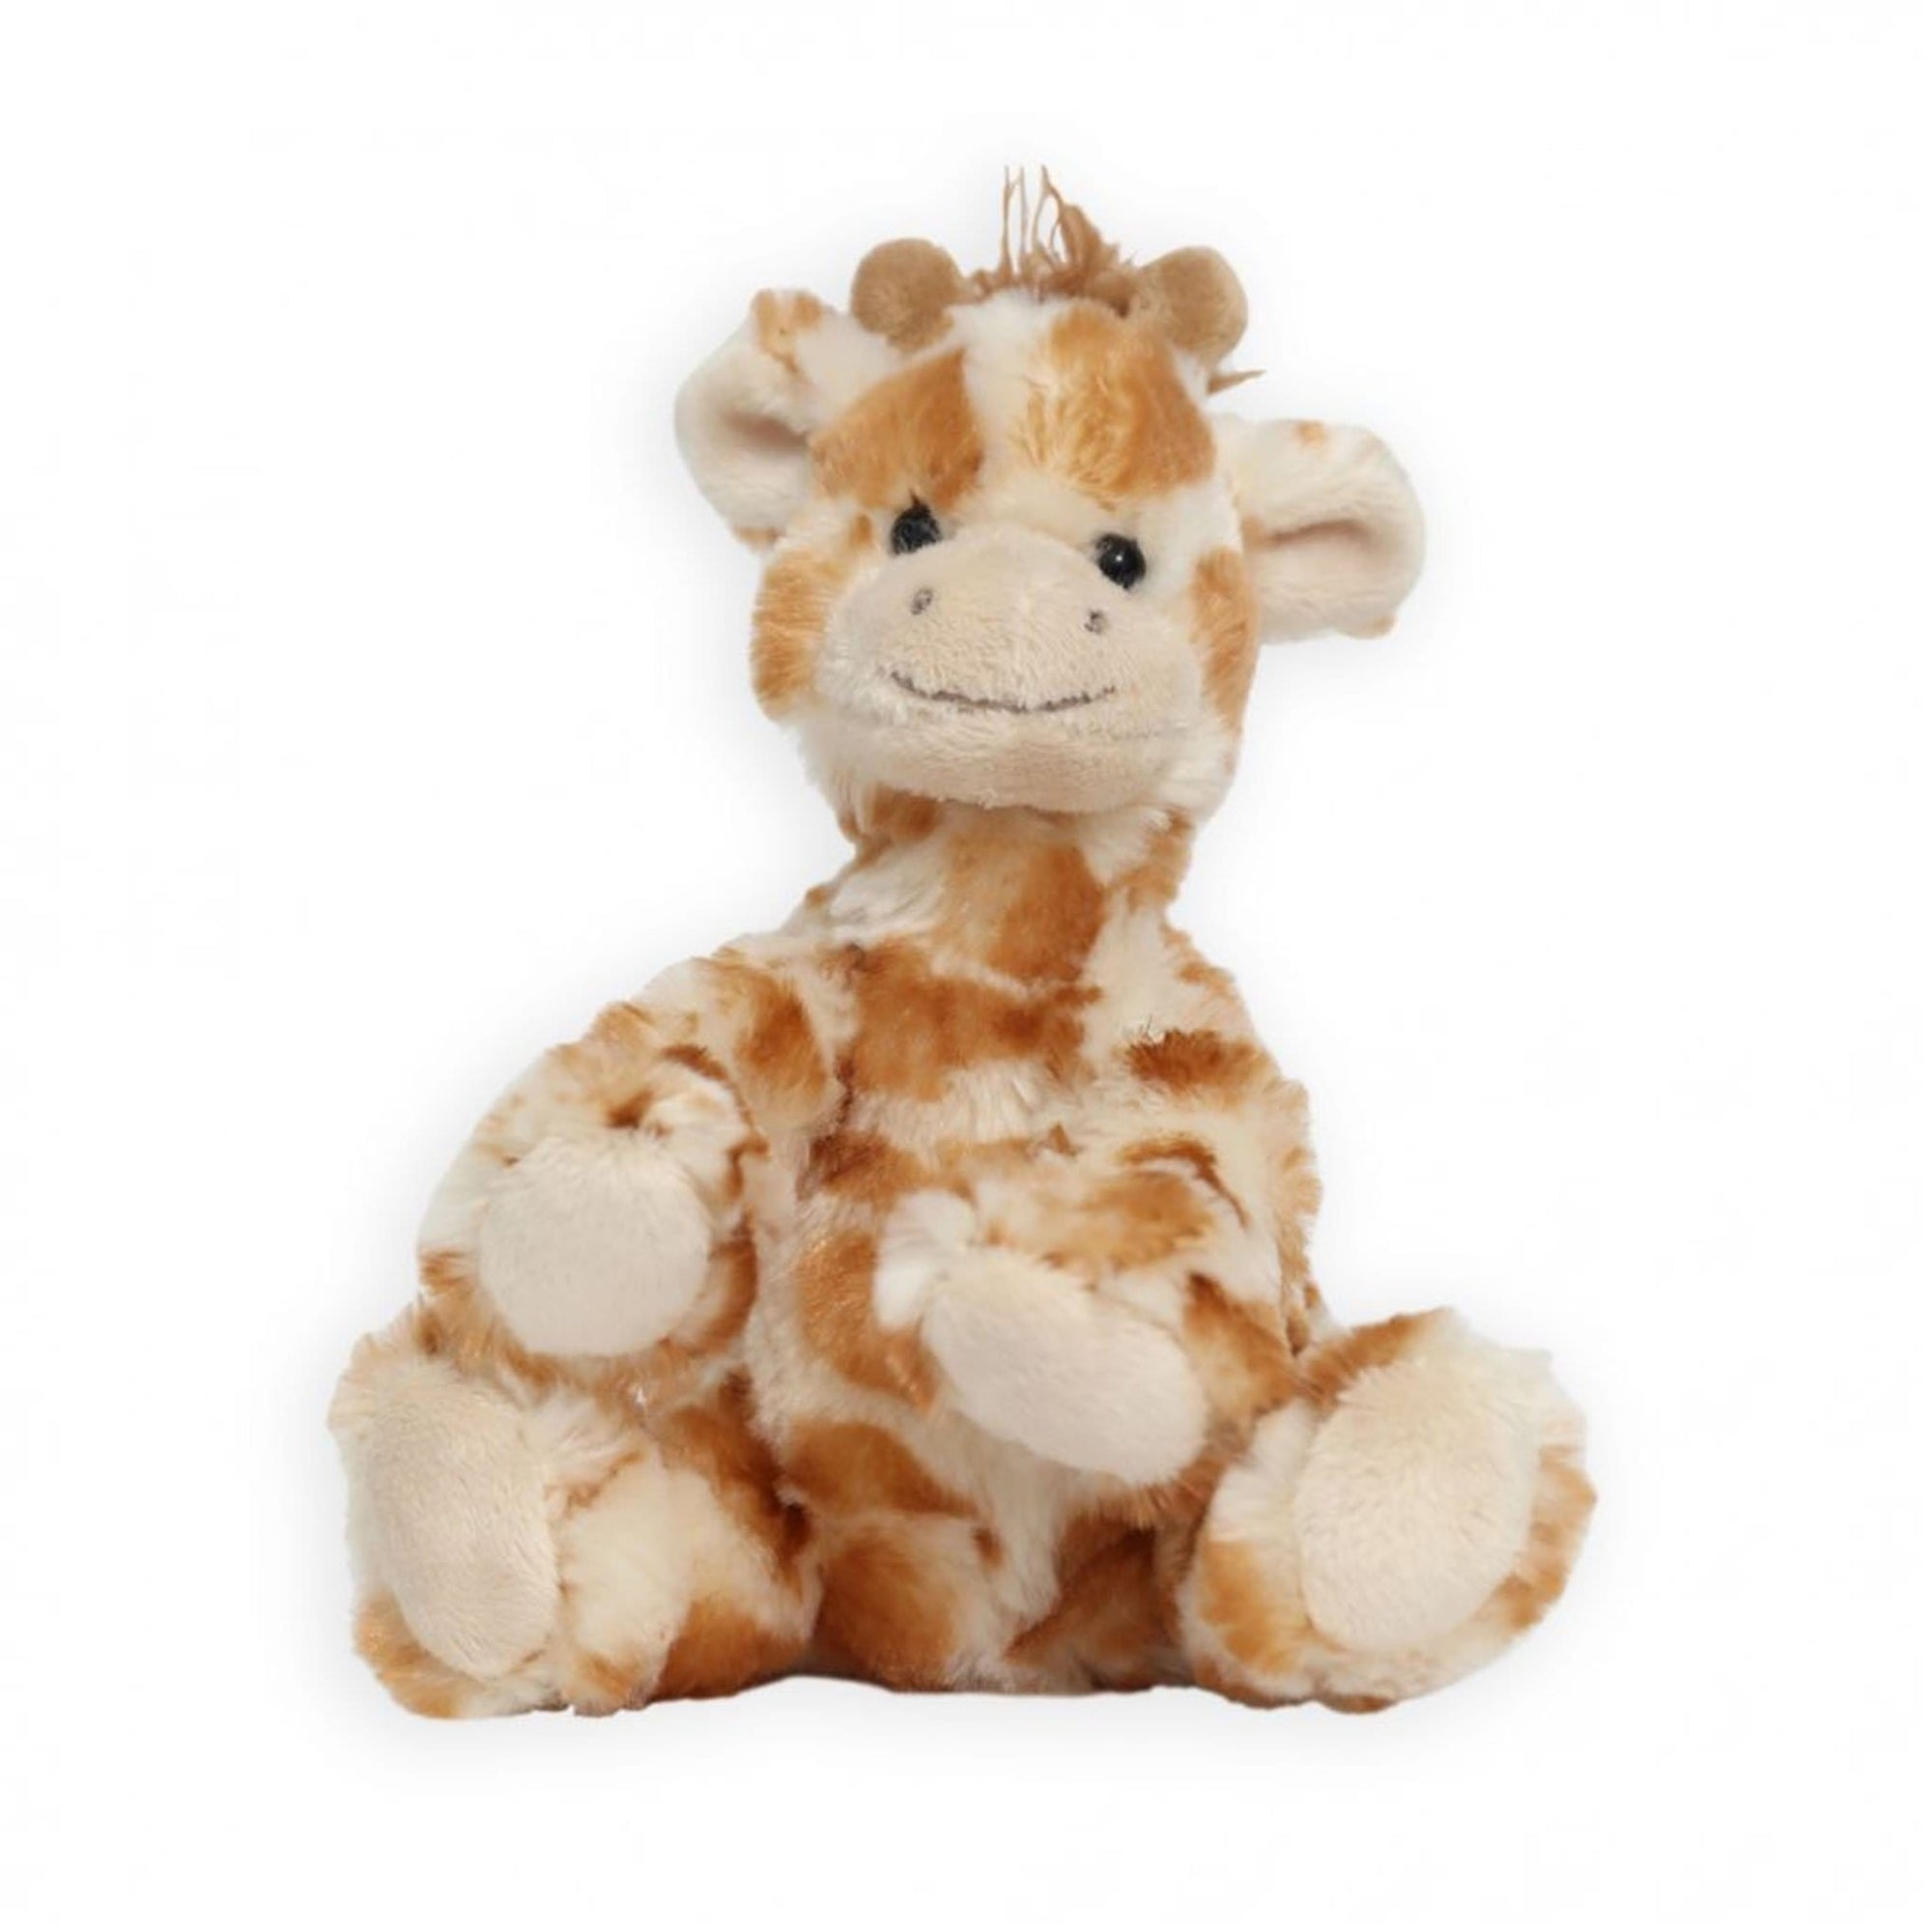 Baby Plush Giraffe Toy